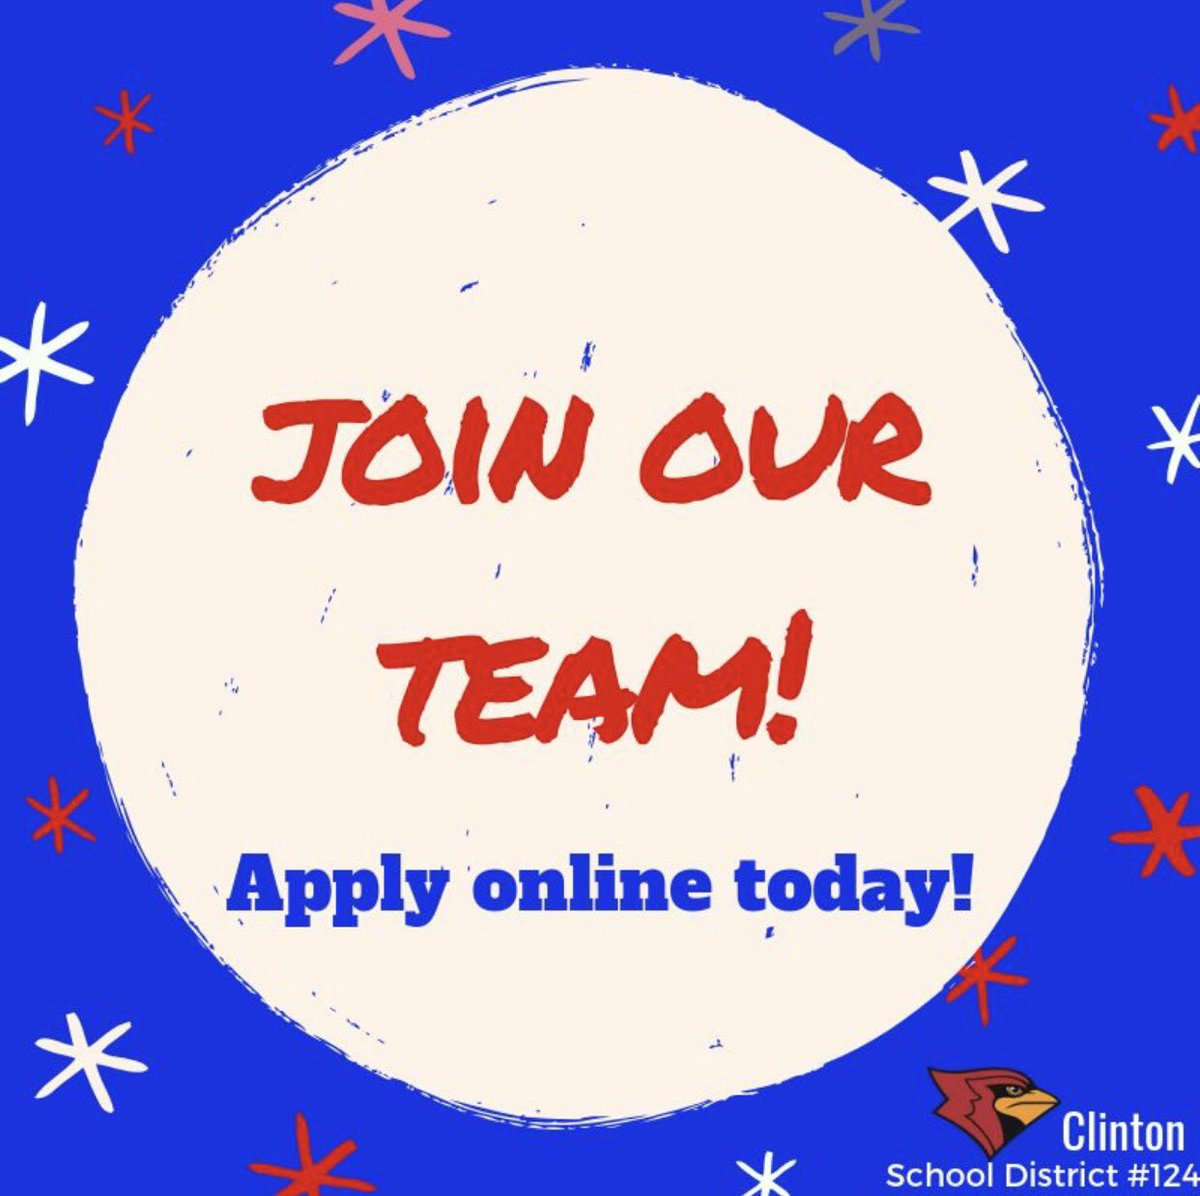 Looking for a great place to work, or know someone who is? Check out our teaching opportunities for the 19-20 school year. https://clintonsd.tedk12.com/hire/Index.aspx  @HenryElementary @CIScards345 @CMSCardinals @CHSCards @ClintonTechSch  #CardinalPride